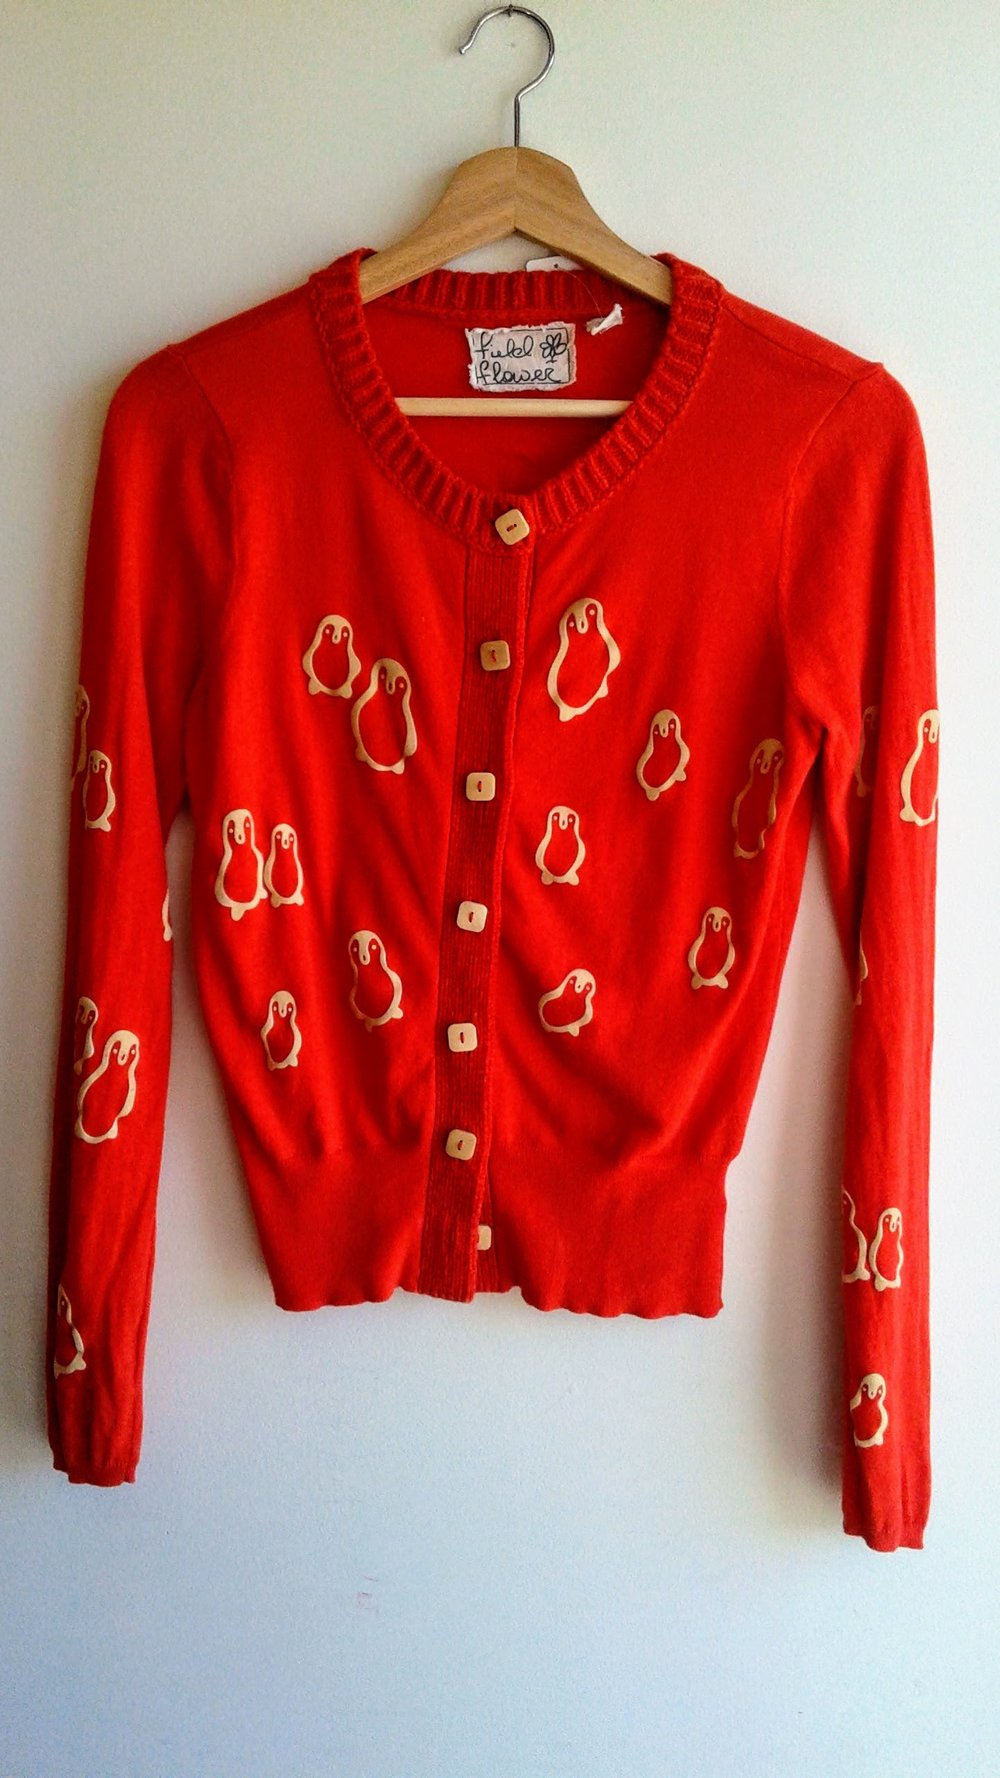 Field Flower cardigan; Size M, $28